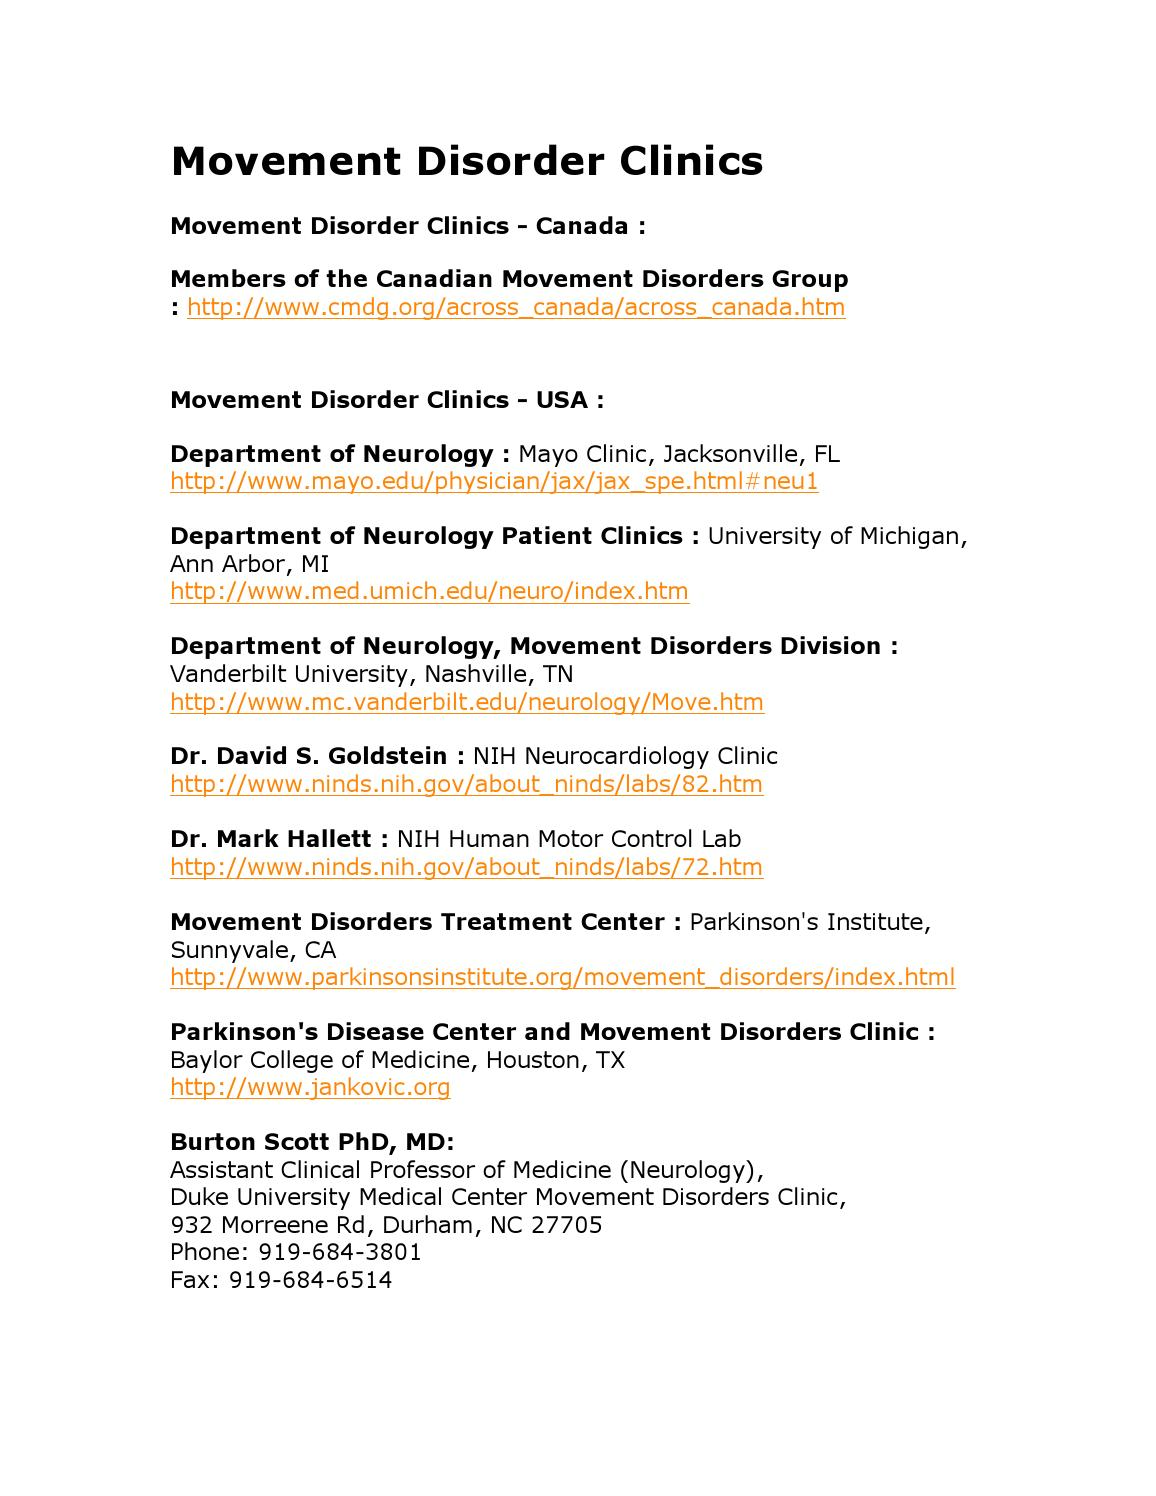 List Of MSA Parkinson's Disease Center and Movement Disorders Clinic